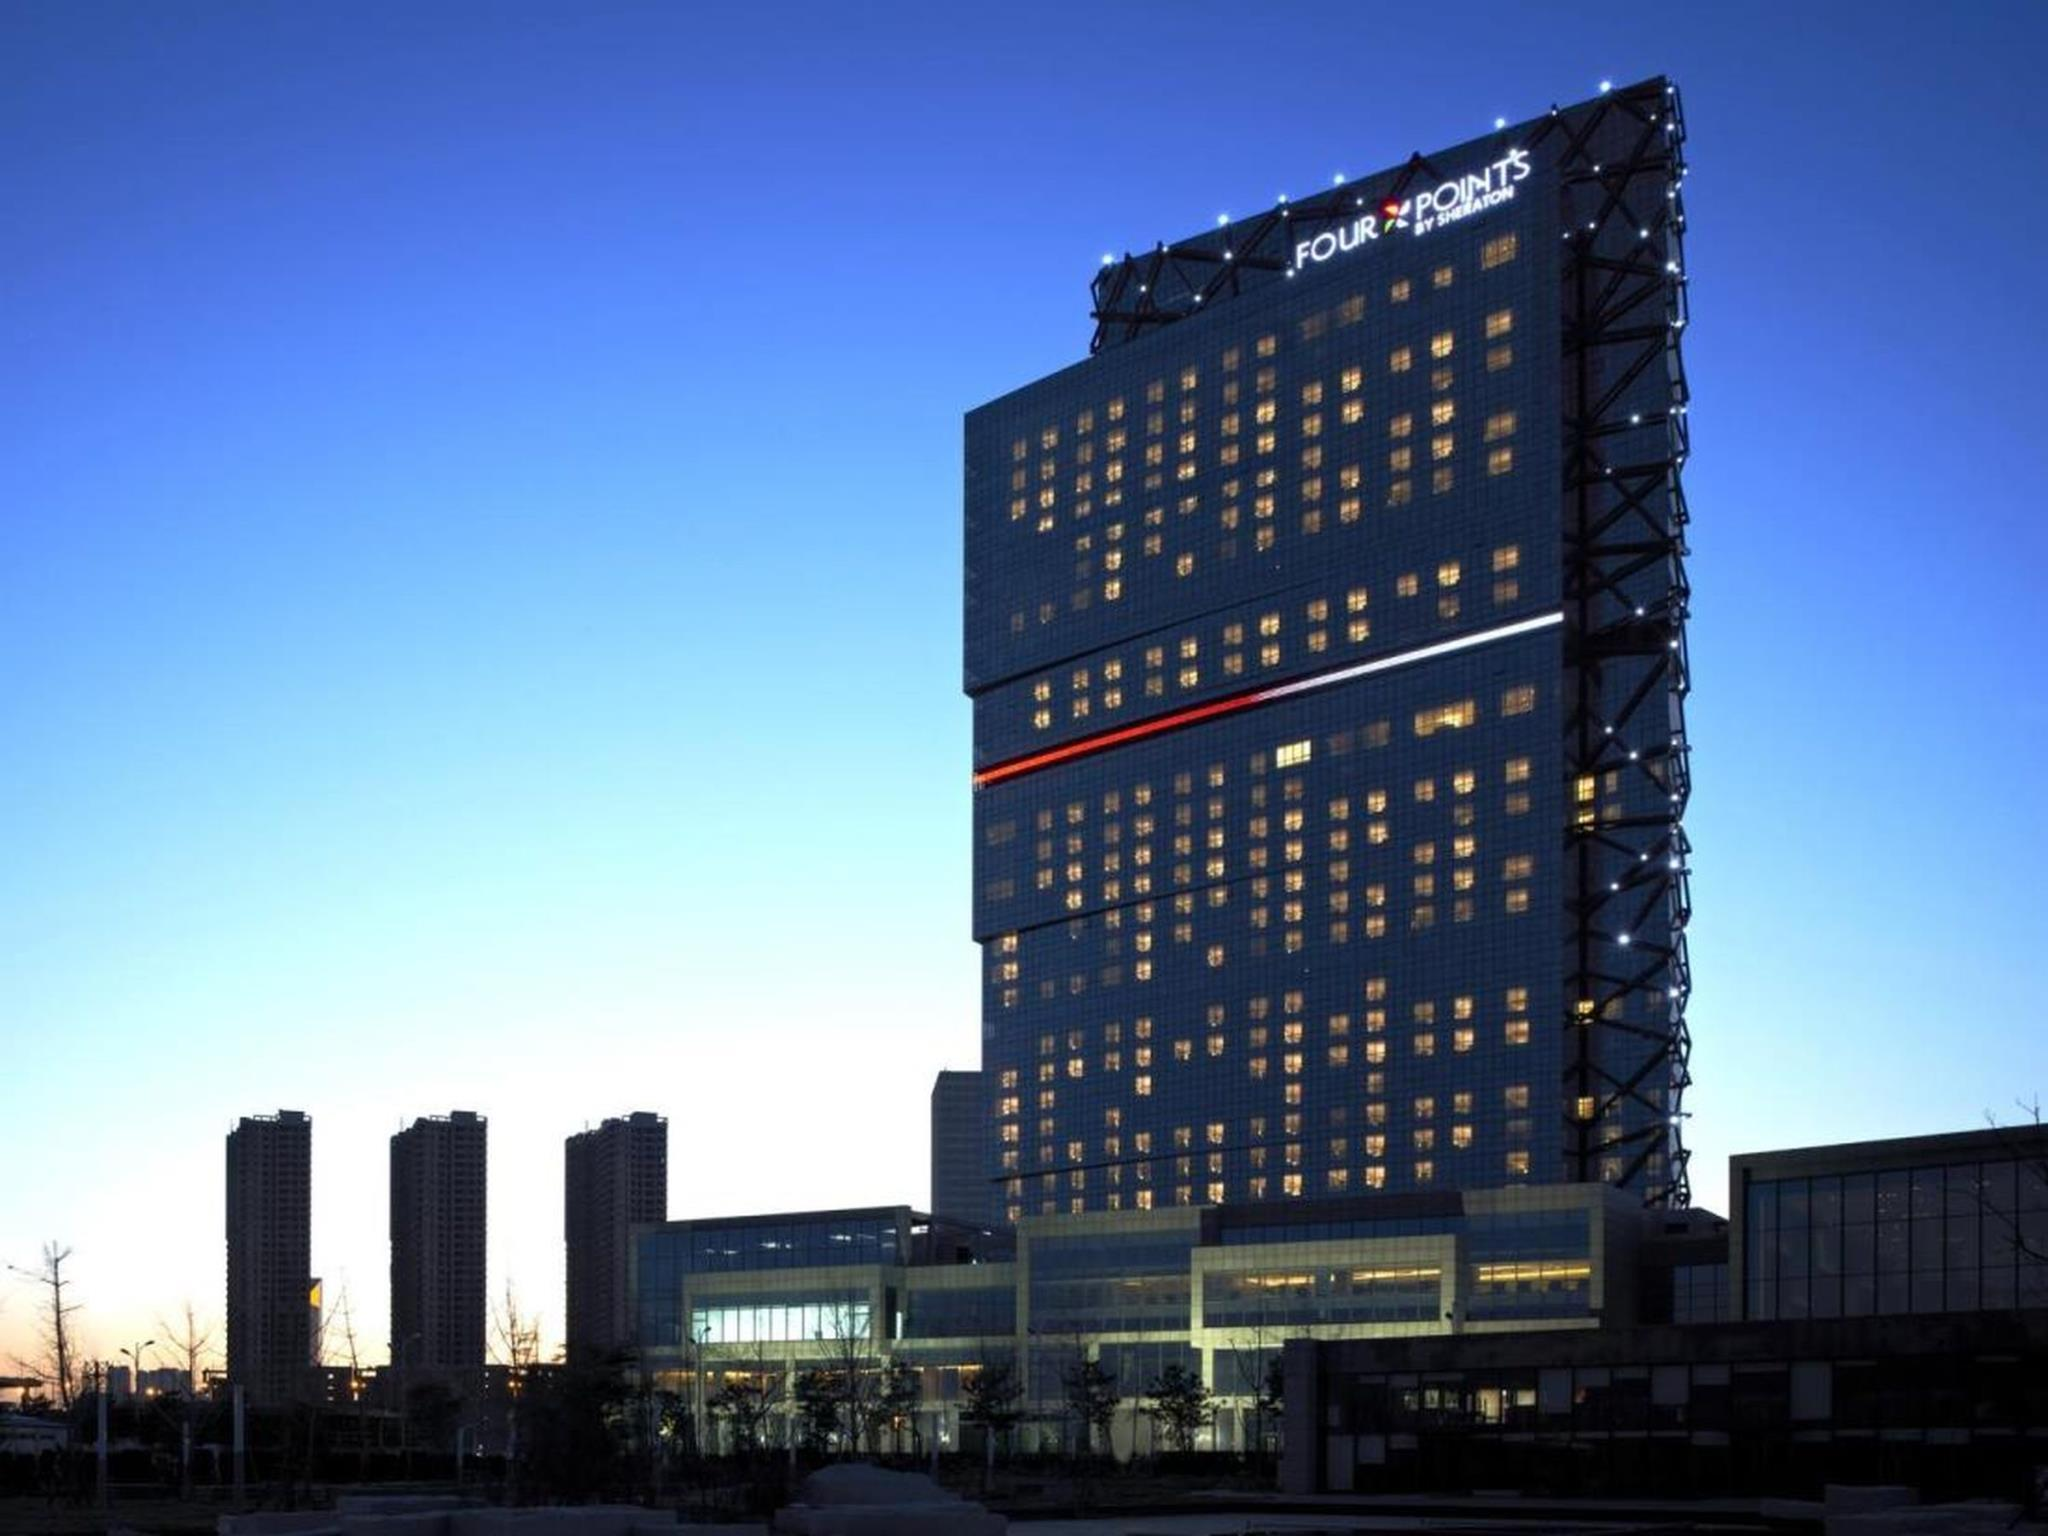 Four Points by Sheraton Qingdao, West Coast, Qingdao